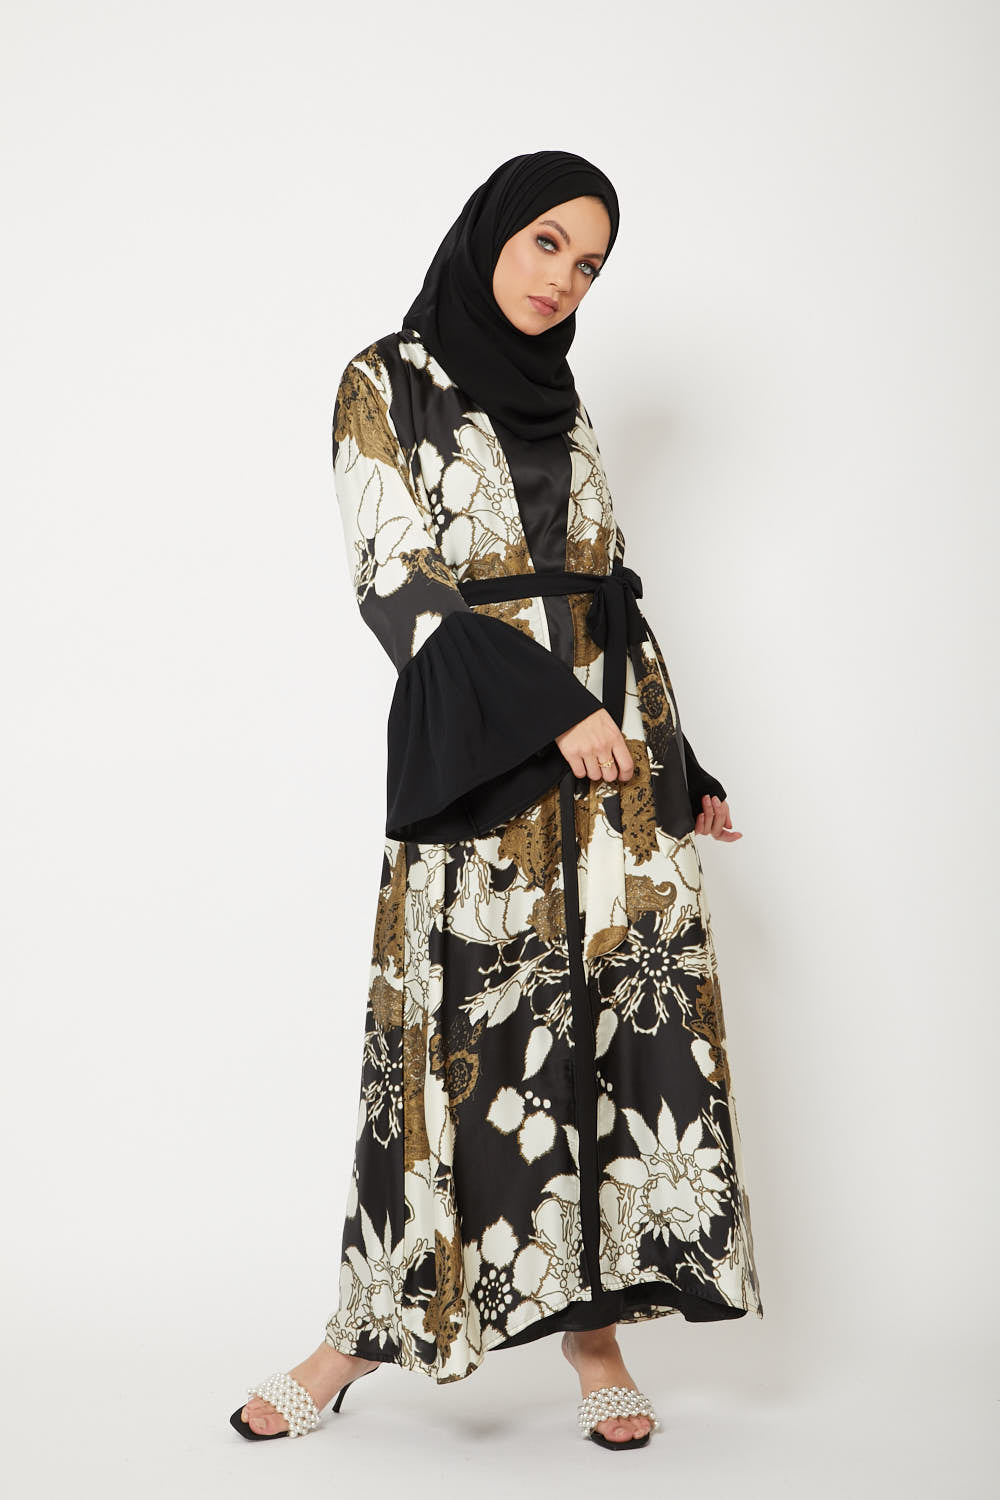 Black Floral Bell Sleeve Kimono - Limited Edition